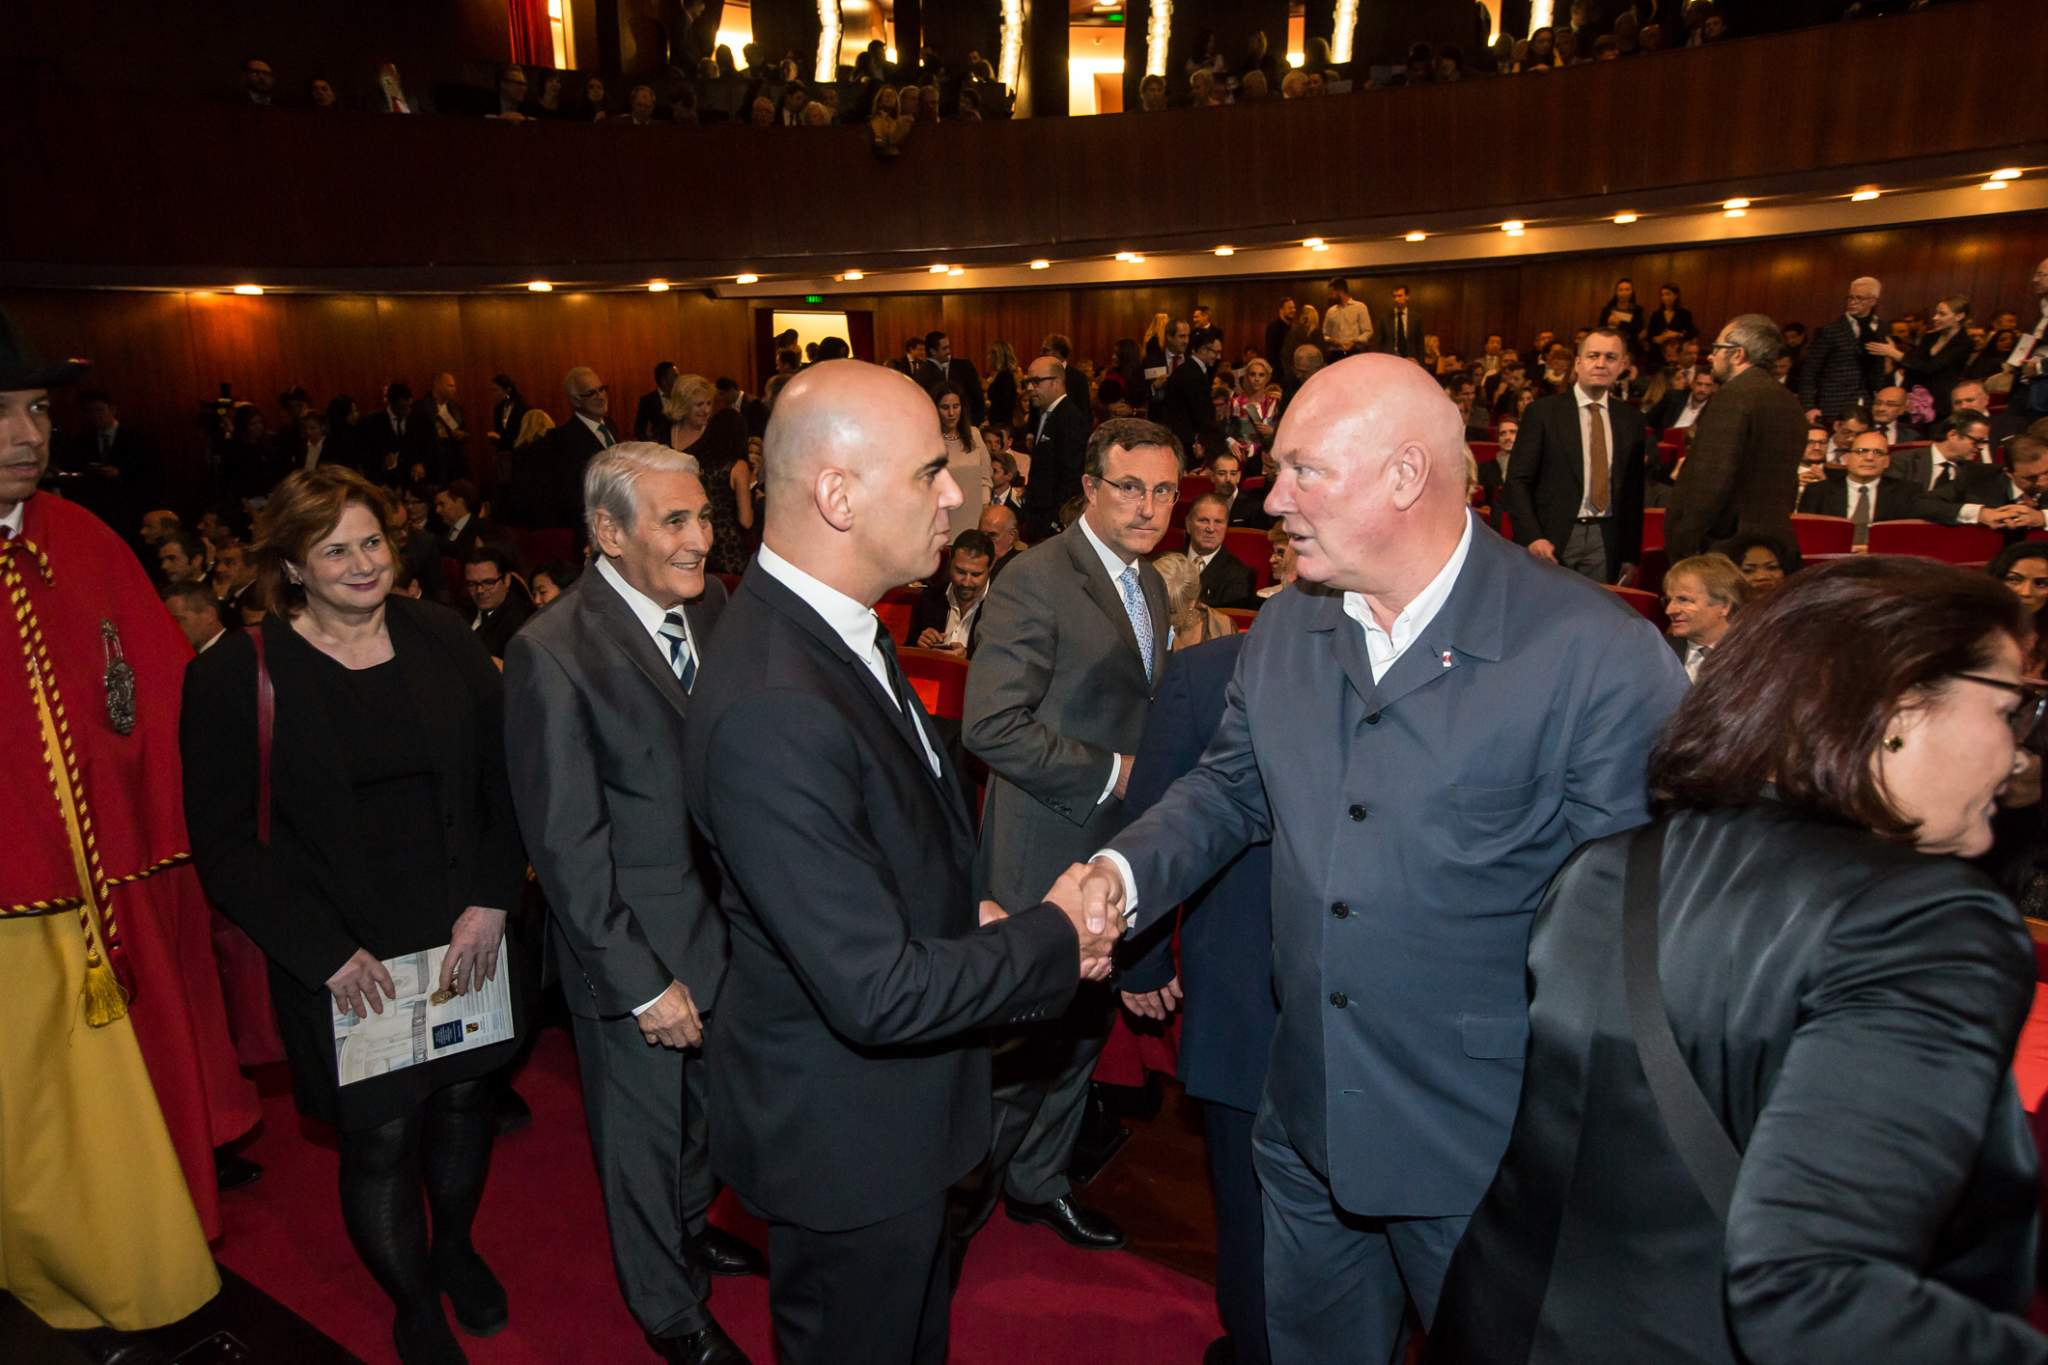 Alain Berset (Federal Councillor) and Jean-Claude Biver (President of the Watch Division of the LVMH Group and Chairman of Hublot) at the prize-giving ceremony of the GPHG 2015